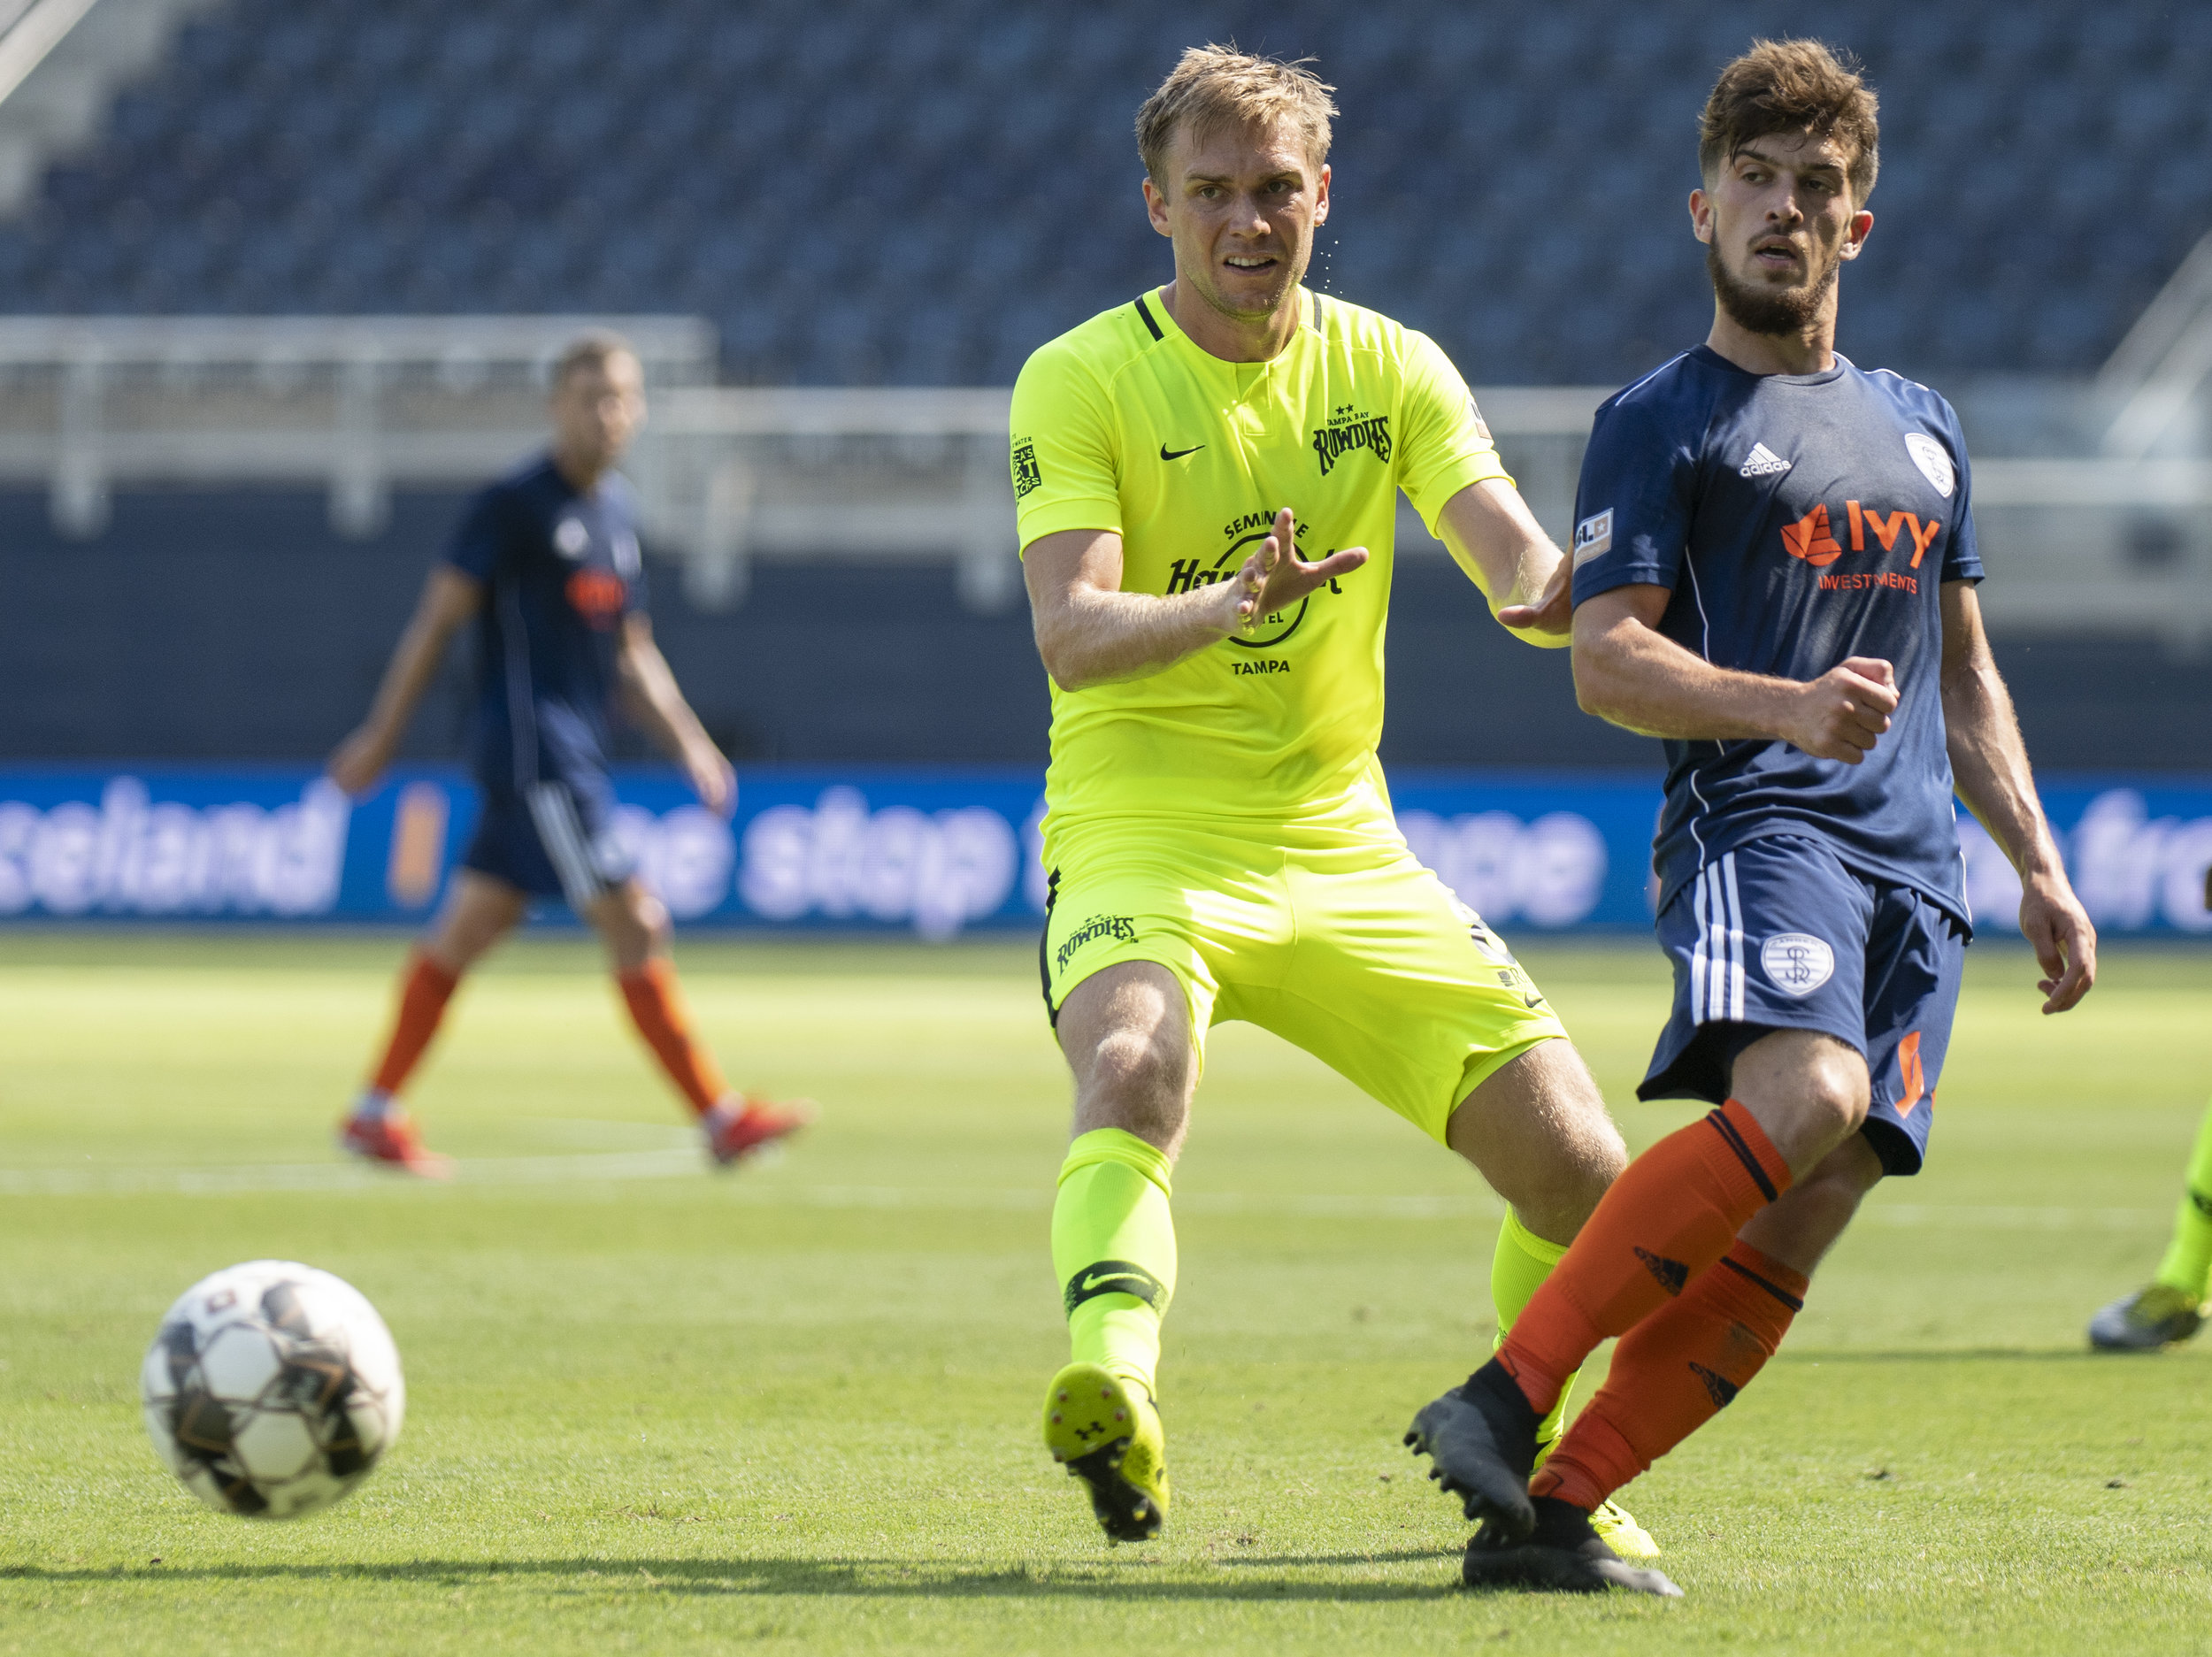 Rassambek Akhmatov (95) passes the ball during the Swope Park Rangers vs. Tampa Bay Rowdies match on Sunday, July 7, 2019 at Children's Mercy Park in Kansas City, Kansas. The Rangers fell to the Rowdies 3-1 .